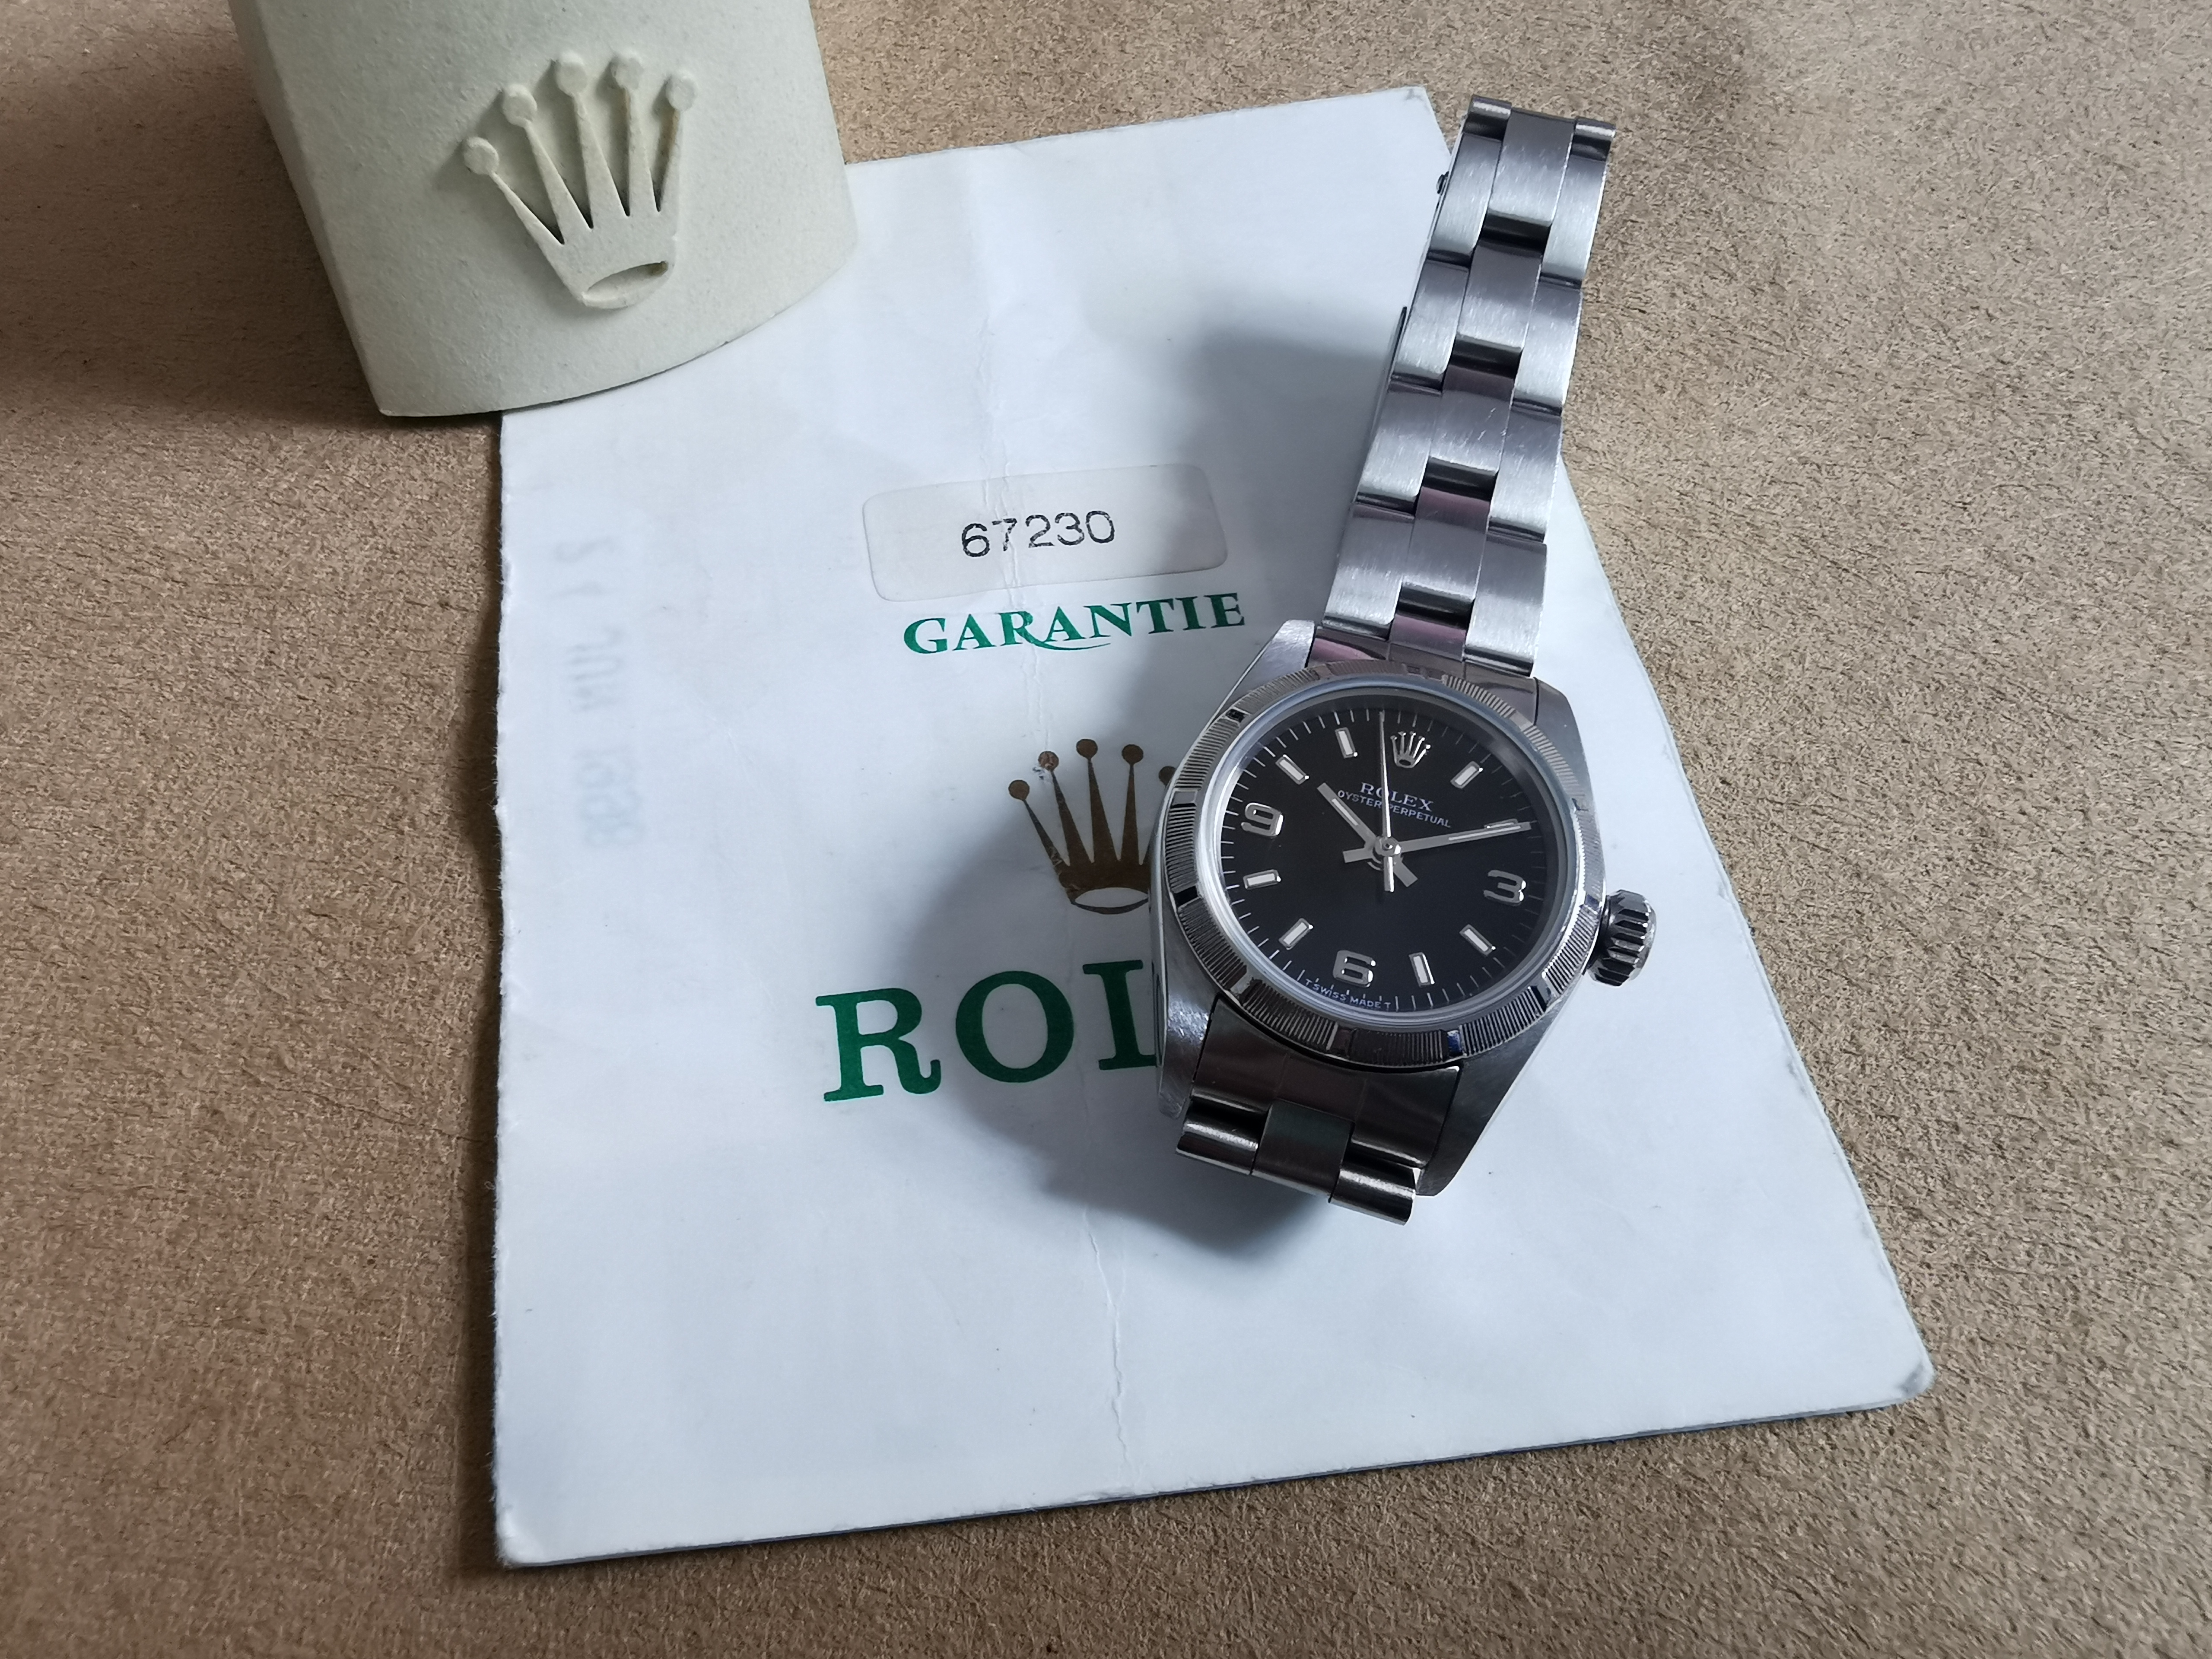 Rolex Oyster Perpetual Lady Ladies Oyster Perpetual Watch 67230 Black Dial Warranty 2002 | San Giorgio a Cremano